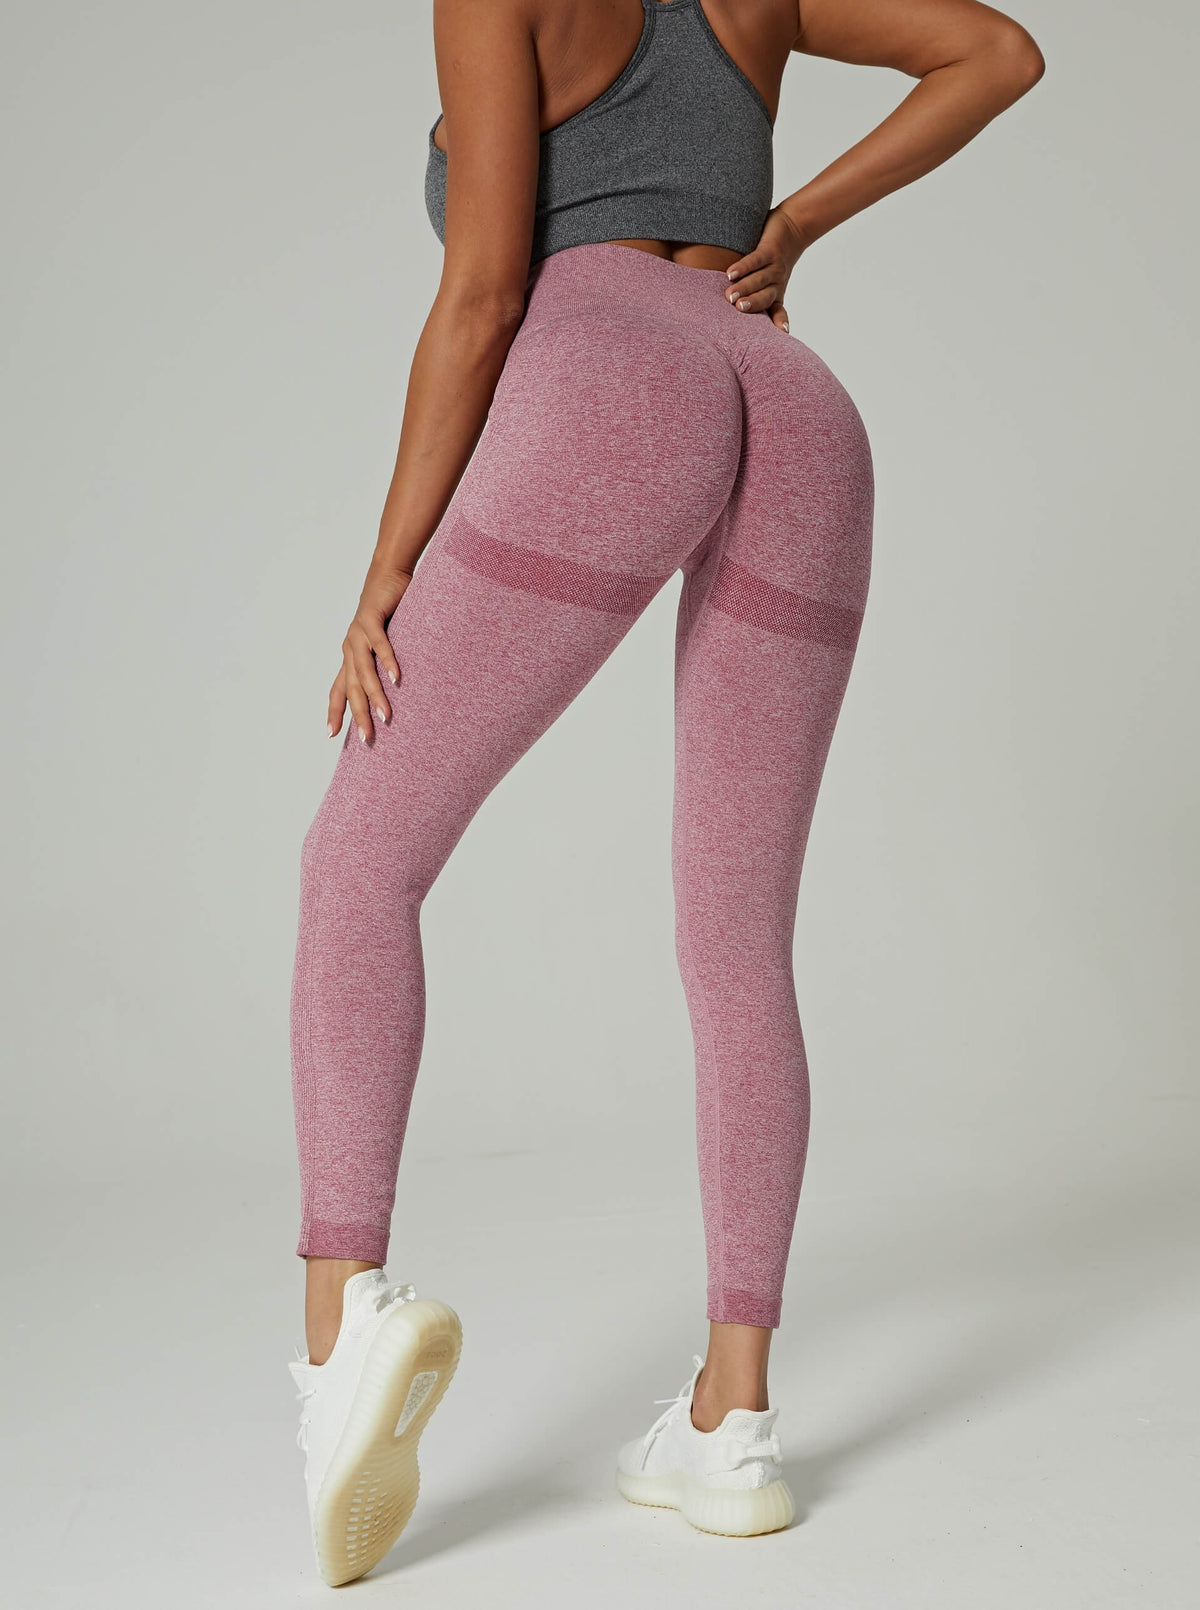 v2 Era Booty Lift Leggings